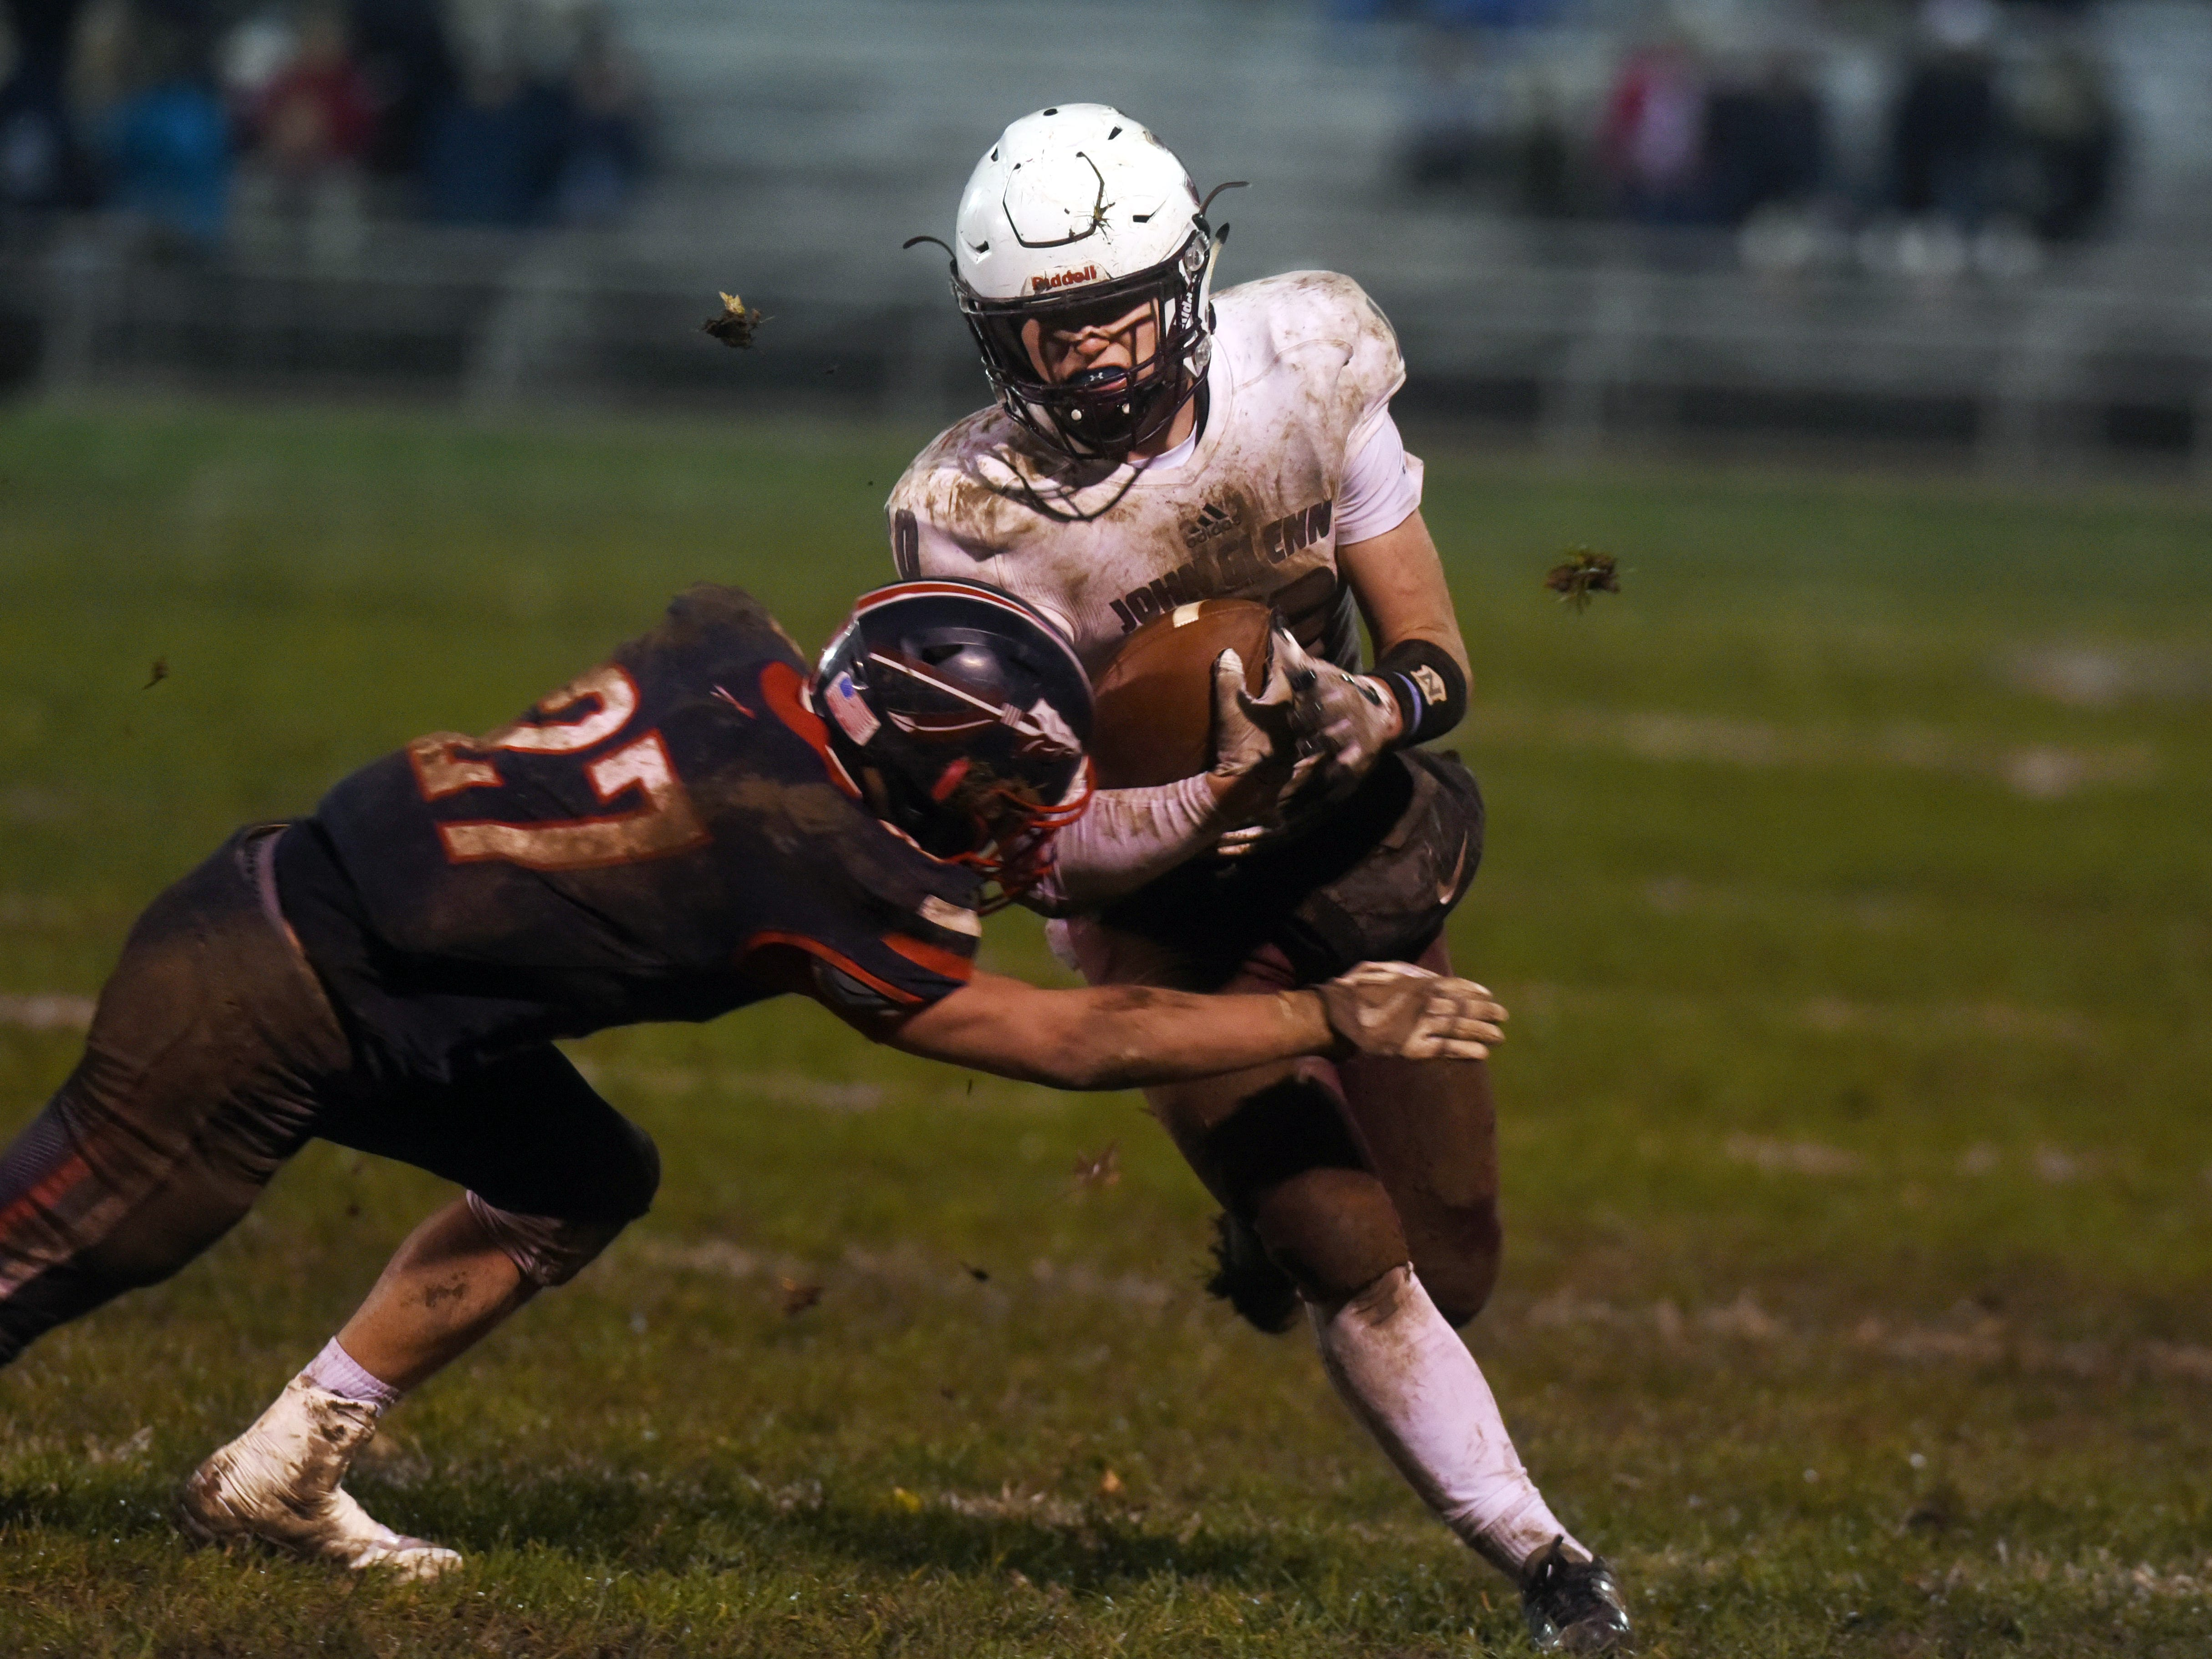 Ben Larson tries to escape a tackle from Zach Love during John Glenn's 16-14 playoff loss to host Gnadenhutten Indian Valley on Saturday night.